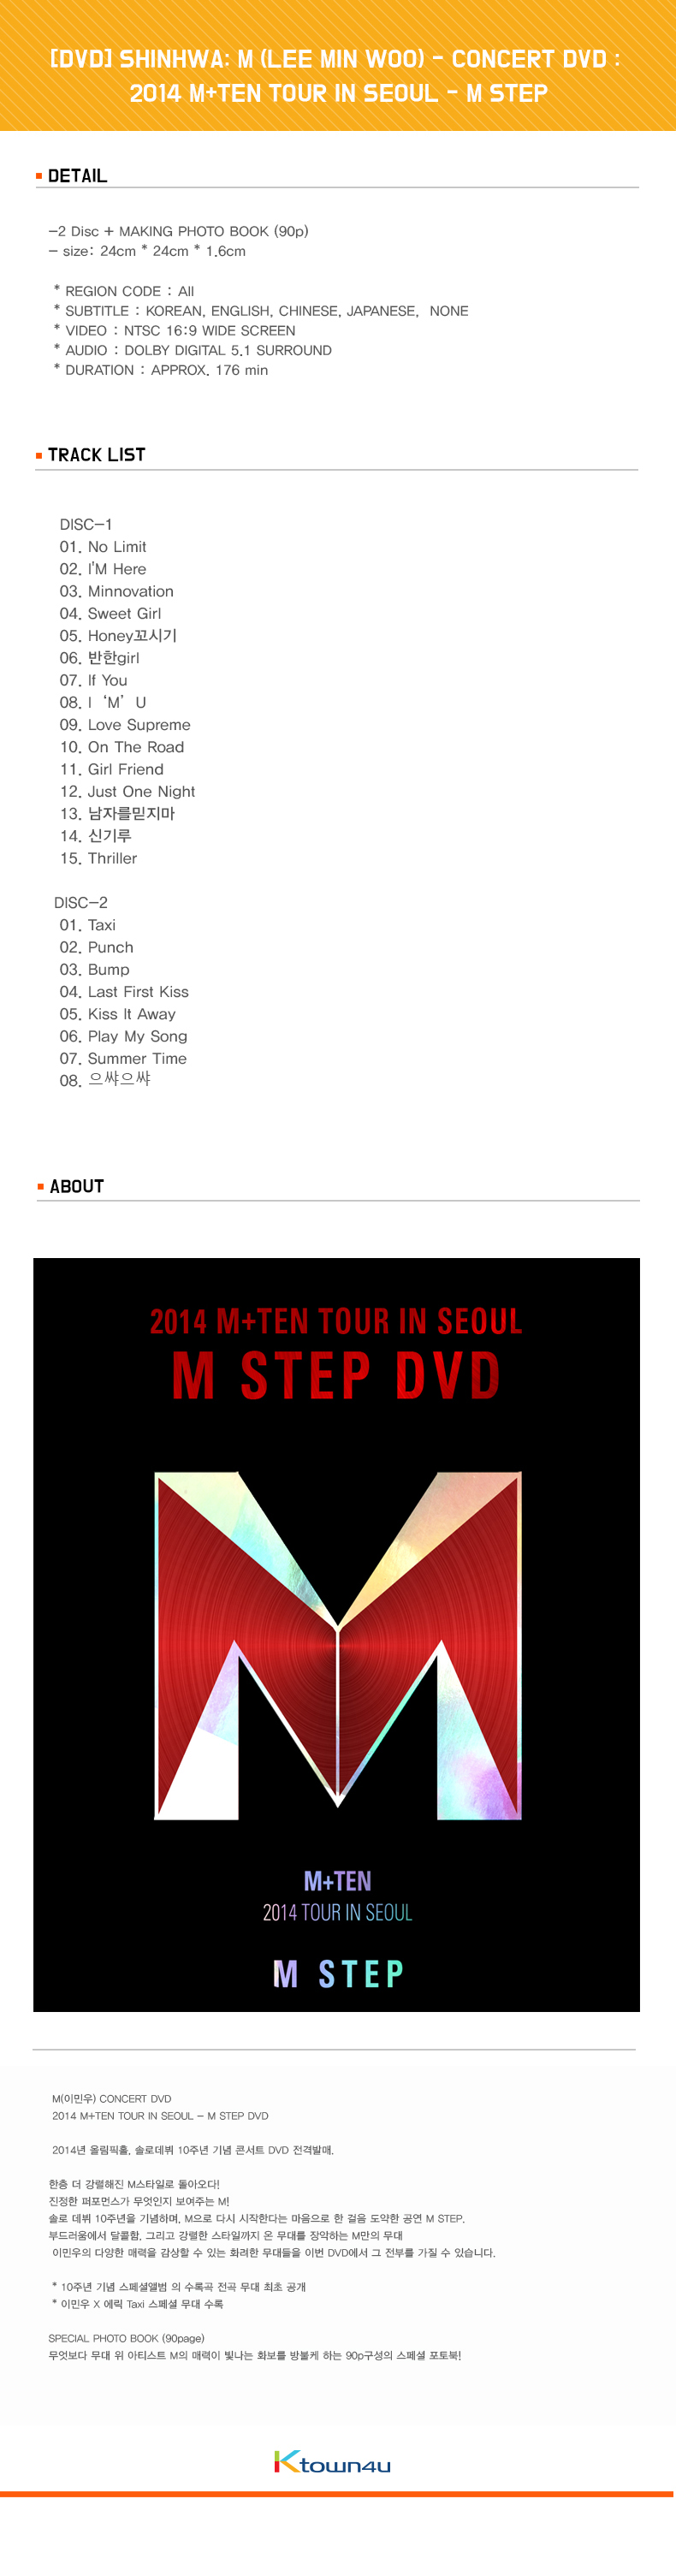 [DVD] SHINHWA: M (LEE MIN WOO) - CONCERT DVD : M+TEN TOUR IN SEOUL - M STEP